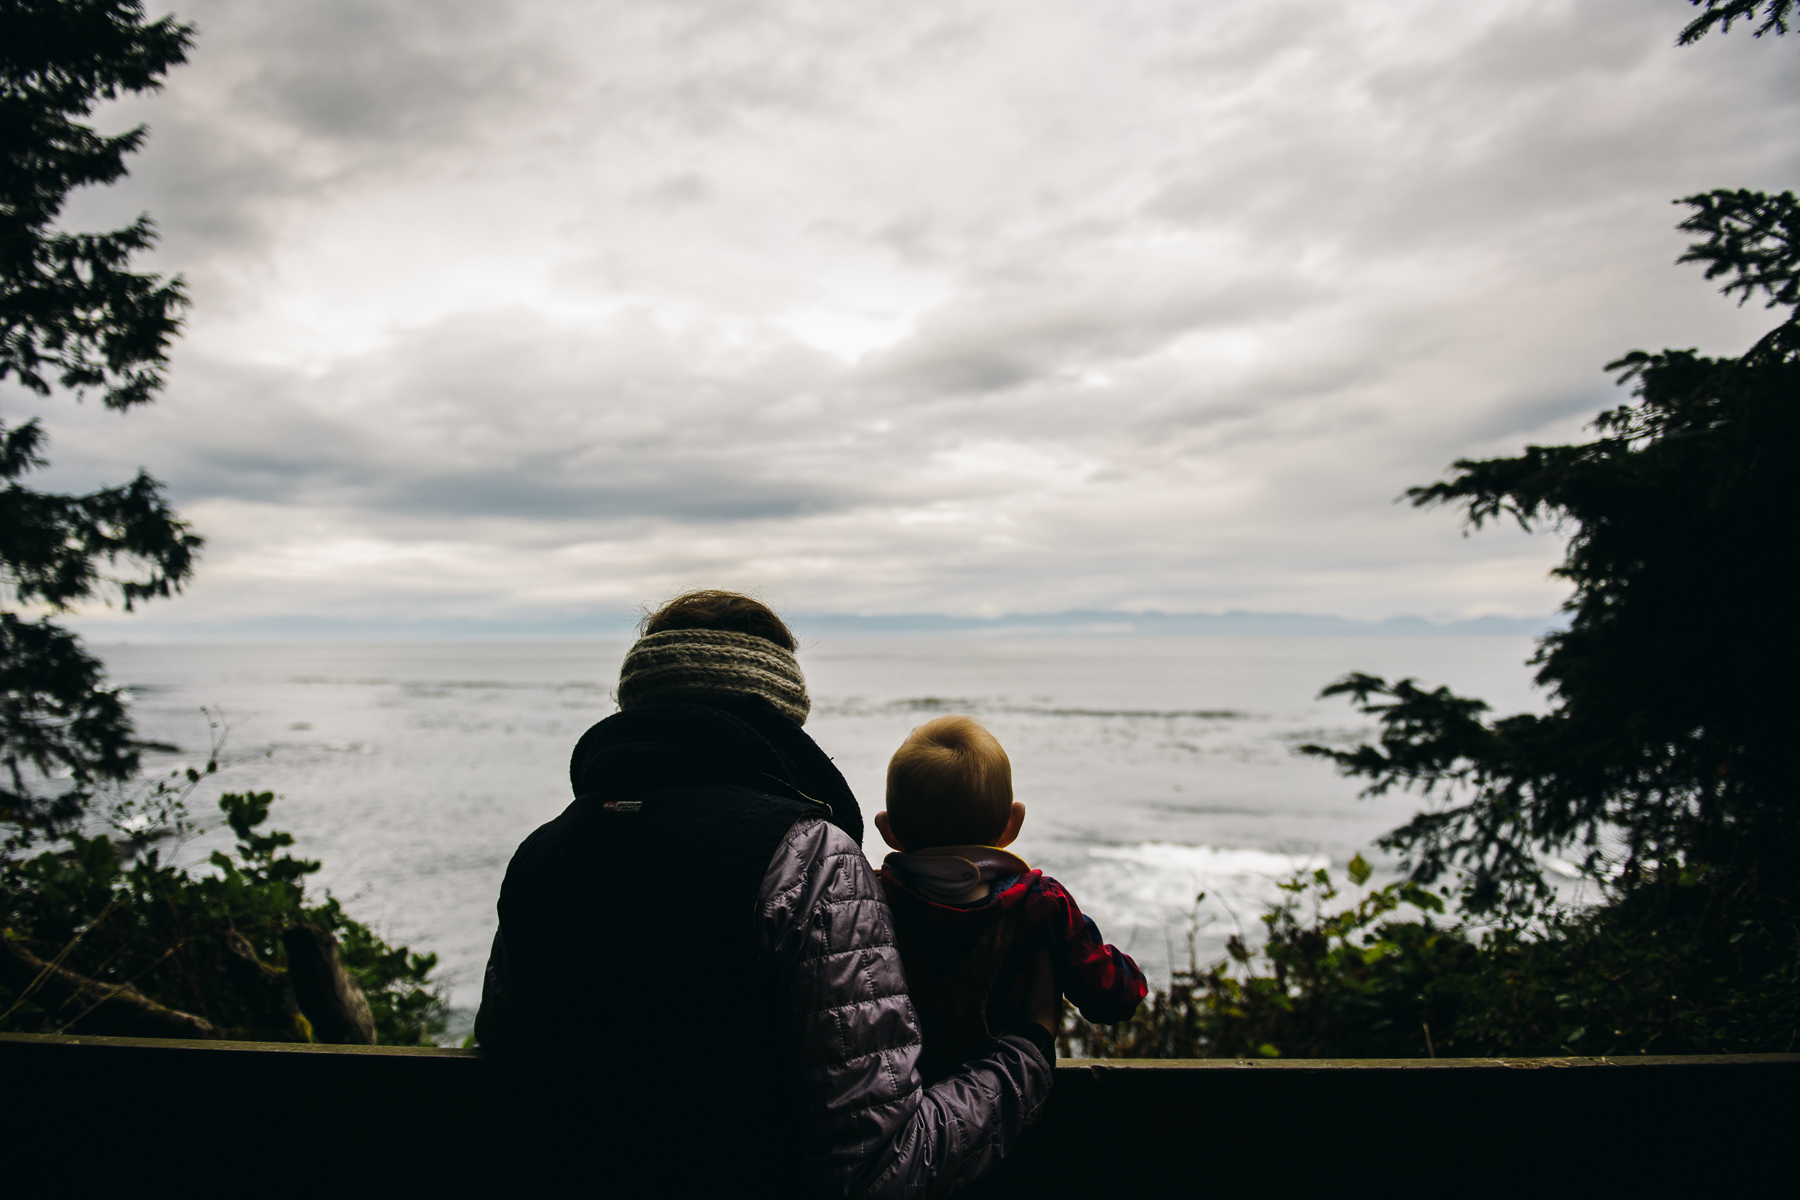 seattle-family-vacation-photographer-20